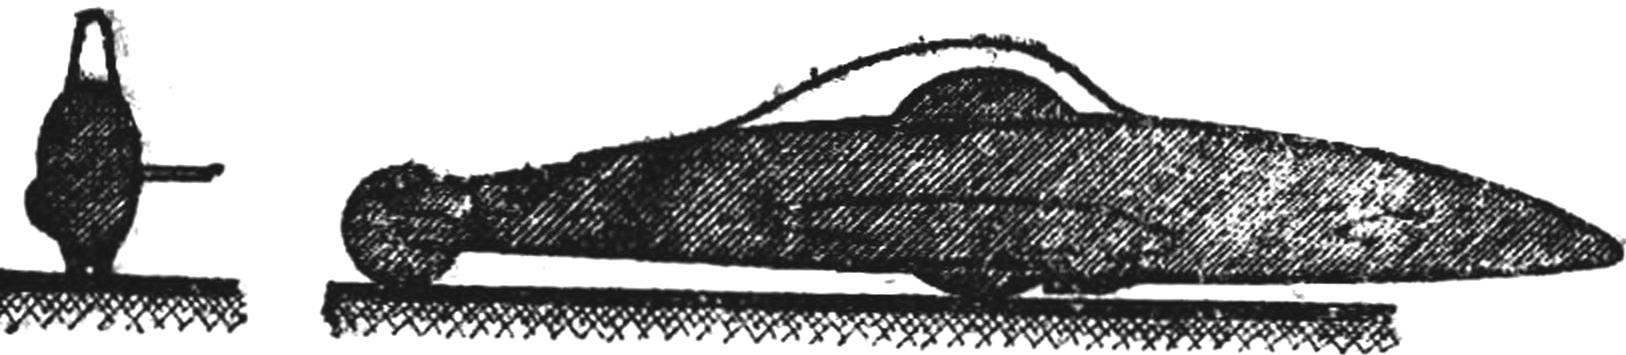 Fig. 2. Racing model with front-wheel drive and horizontally placed engine with minimal aerodynamic drag.